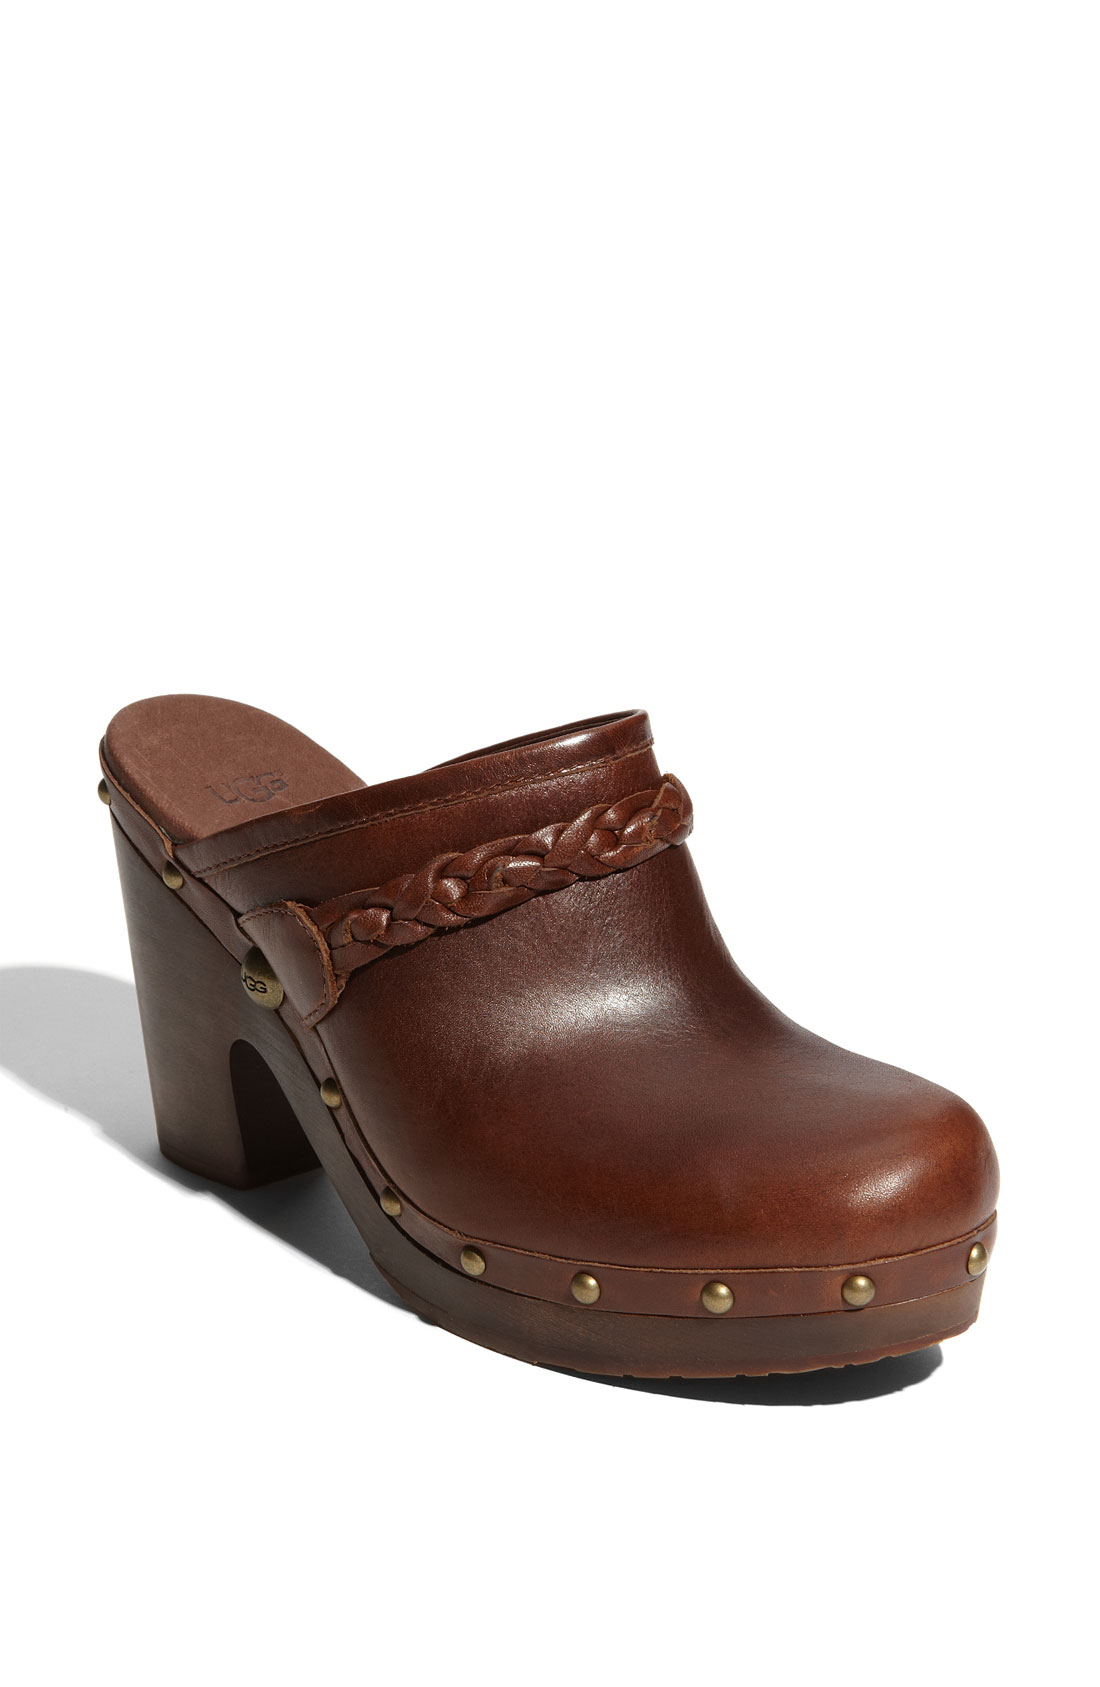 uggs clogs outlet